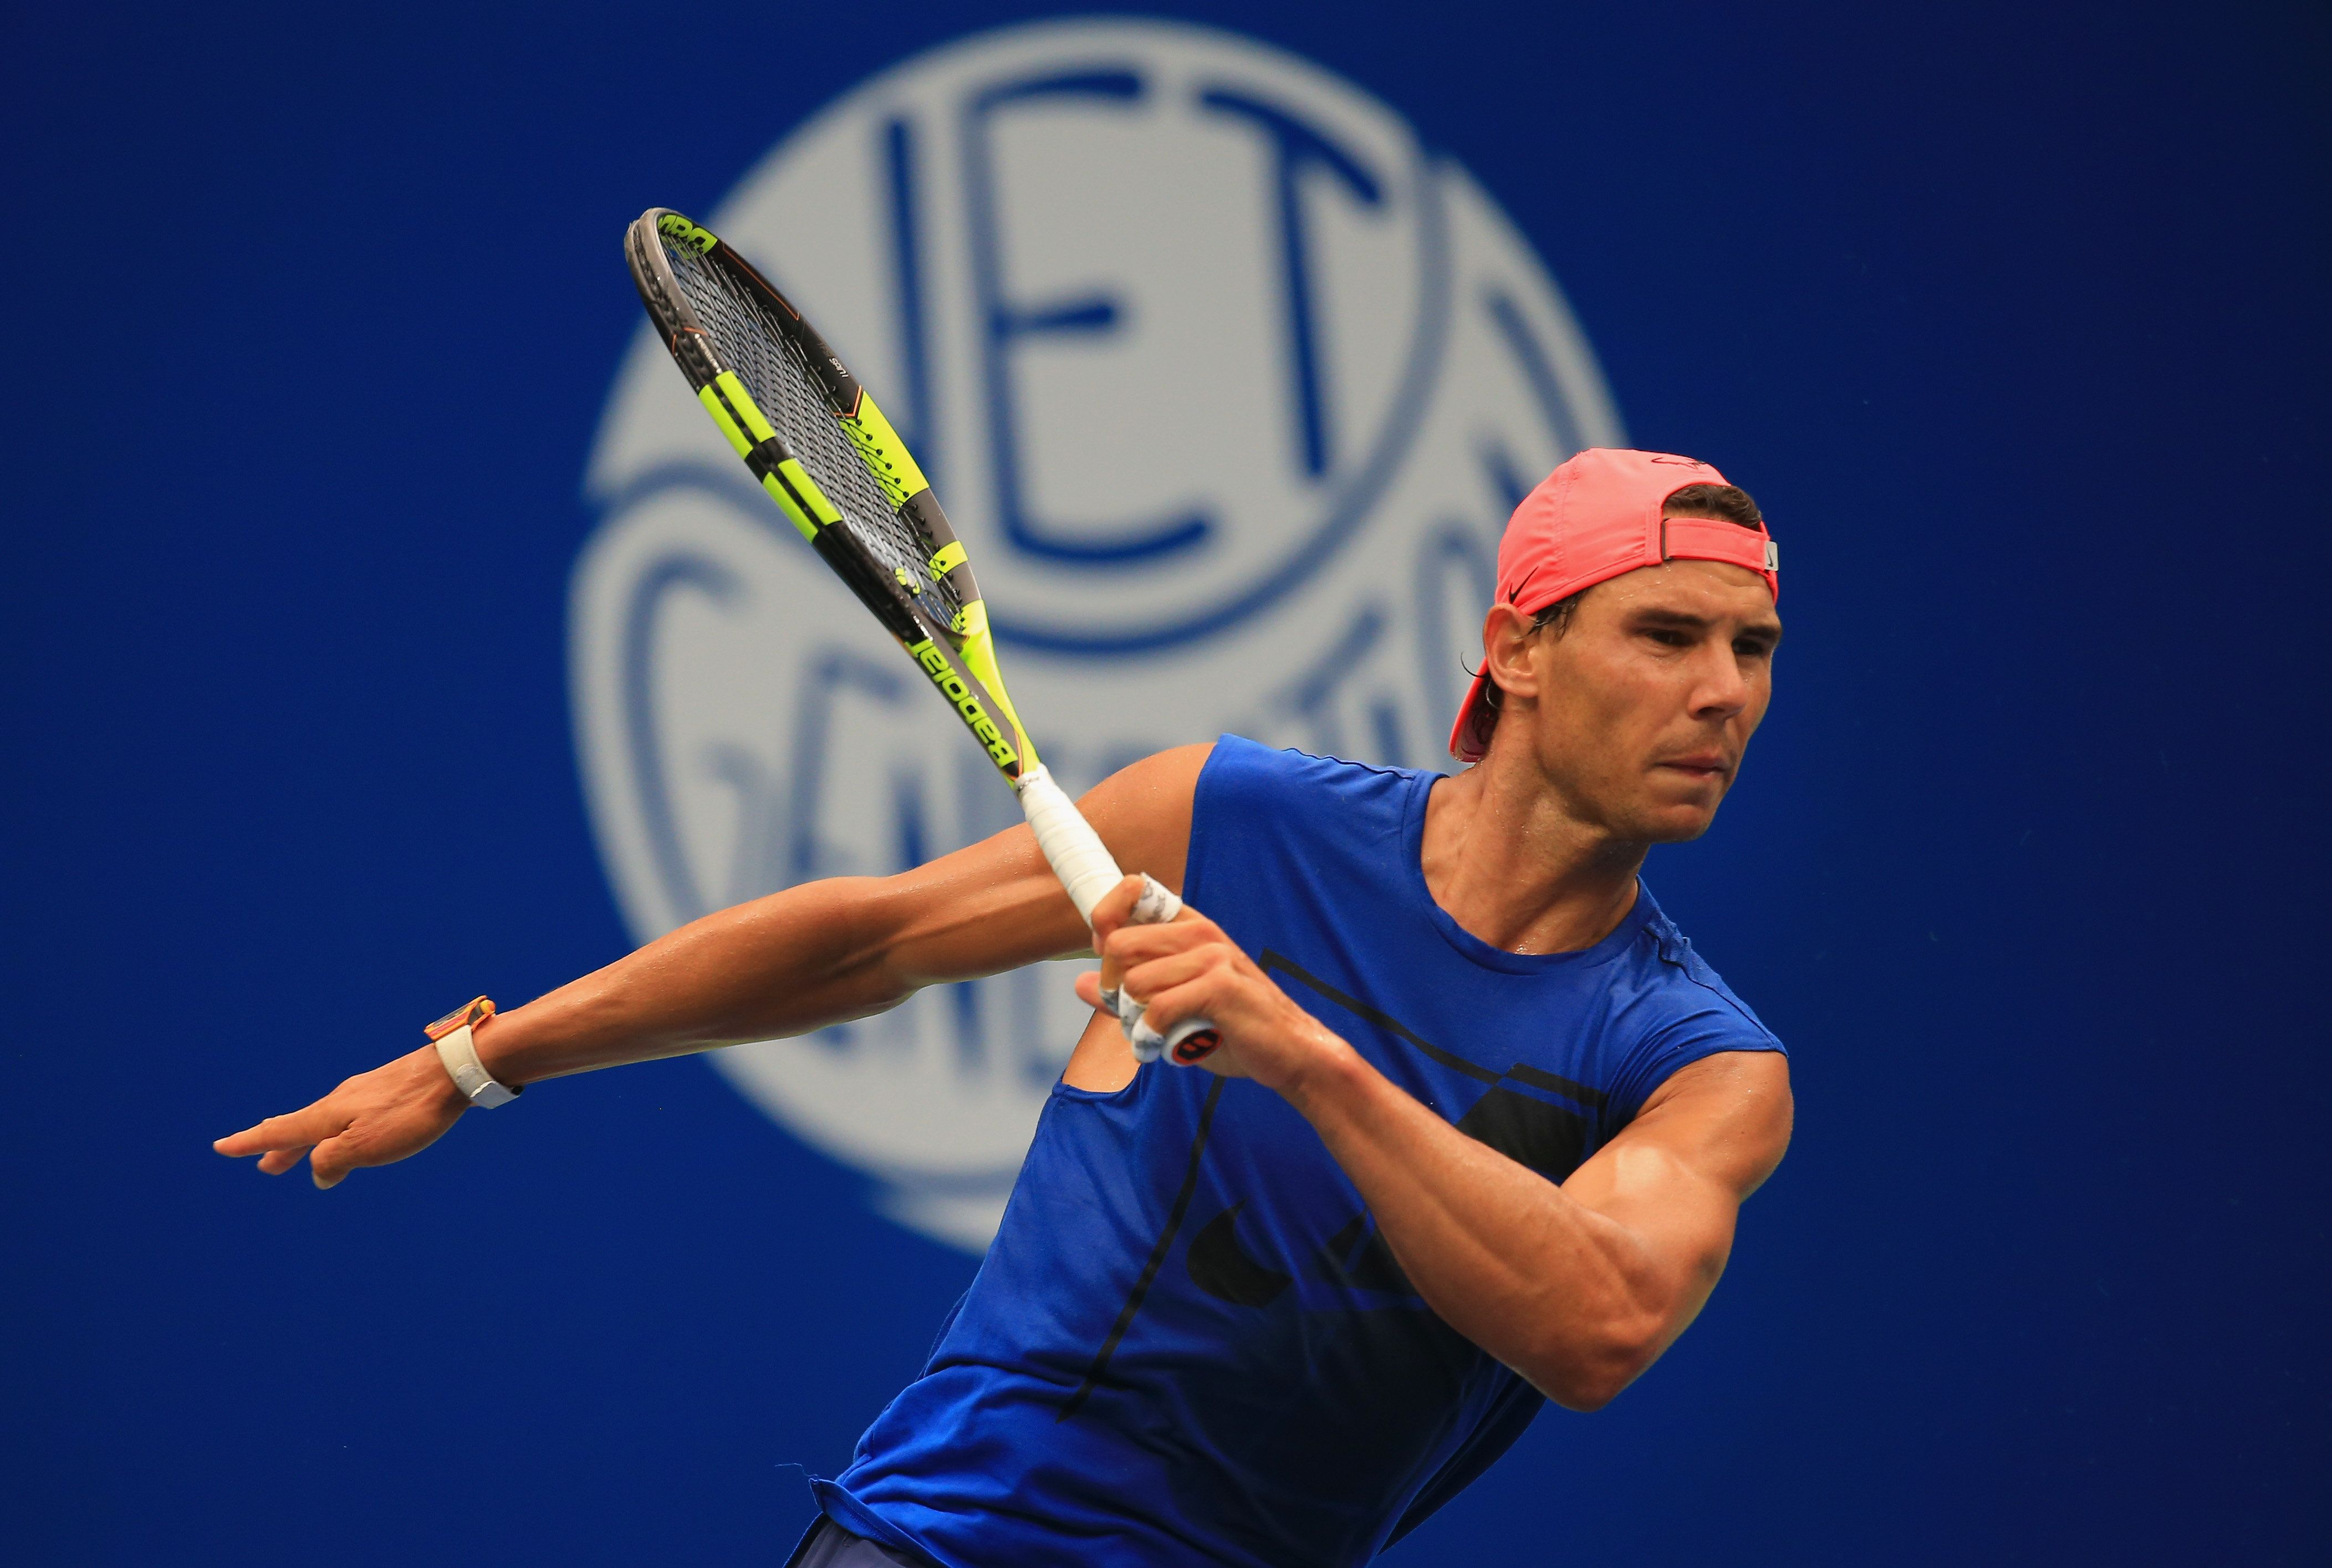 NEW YORK, NY - AUGUST 25:  Rafael Nadal of Spain looks on after returning a shot while practicing prior to the start of the 2017 US Open at the USTA Billie Jean King National Tennis Center on August 25, 2017 in the Queens borough of New York City.  (Photo by Chris Trotman/Getty Images for USTA)